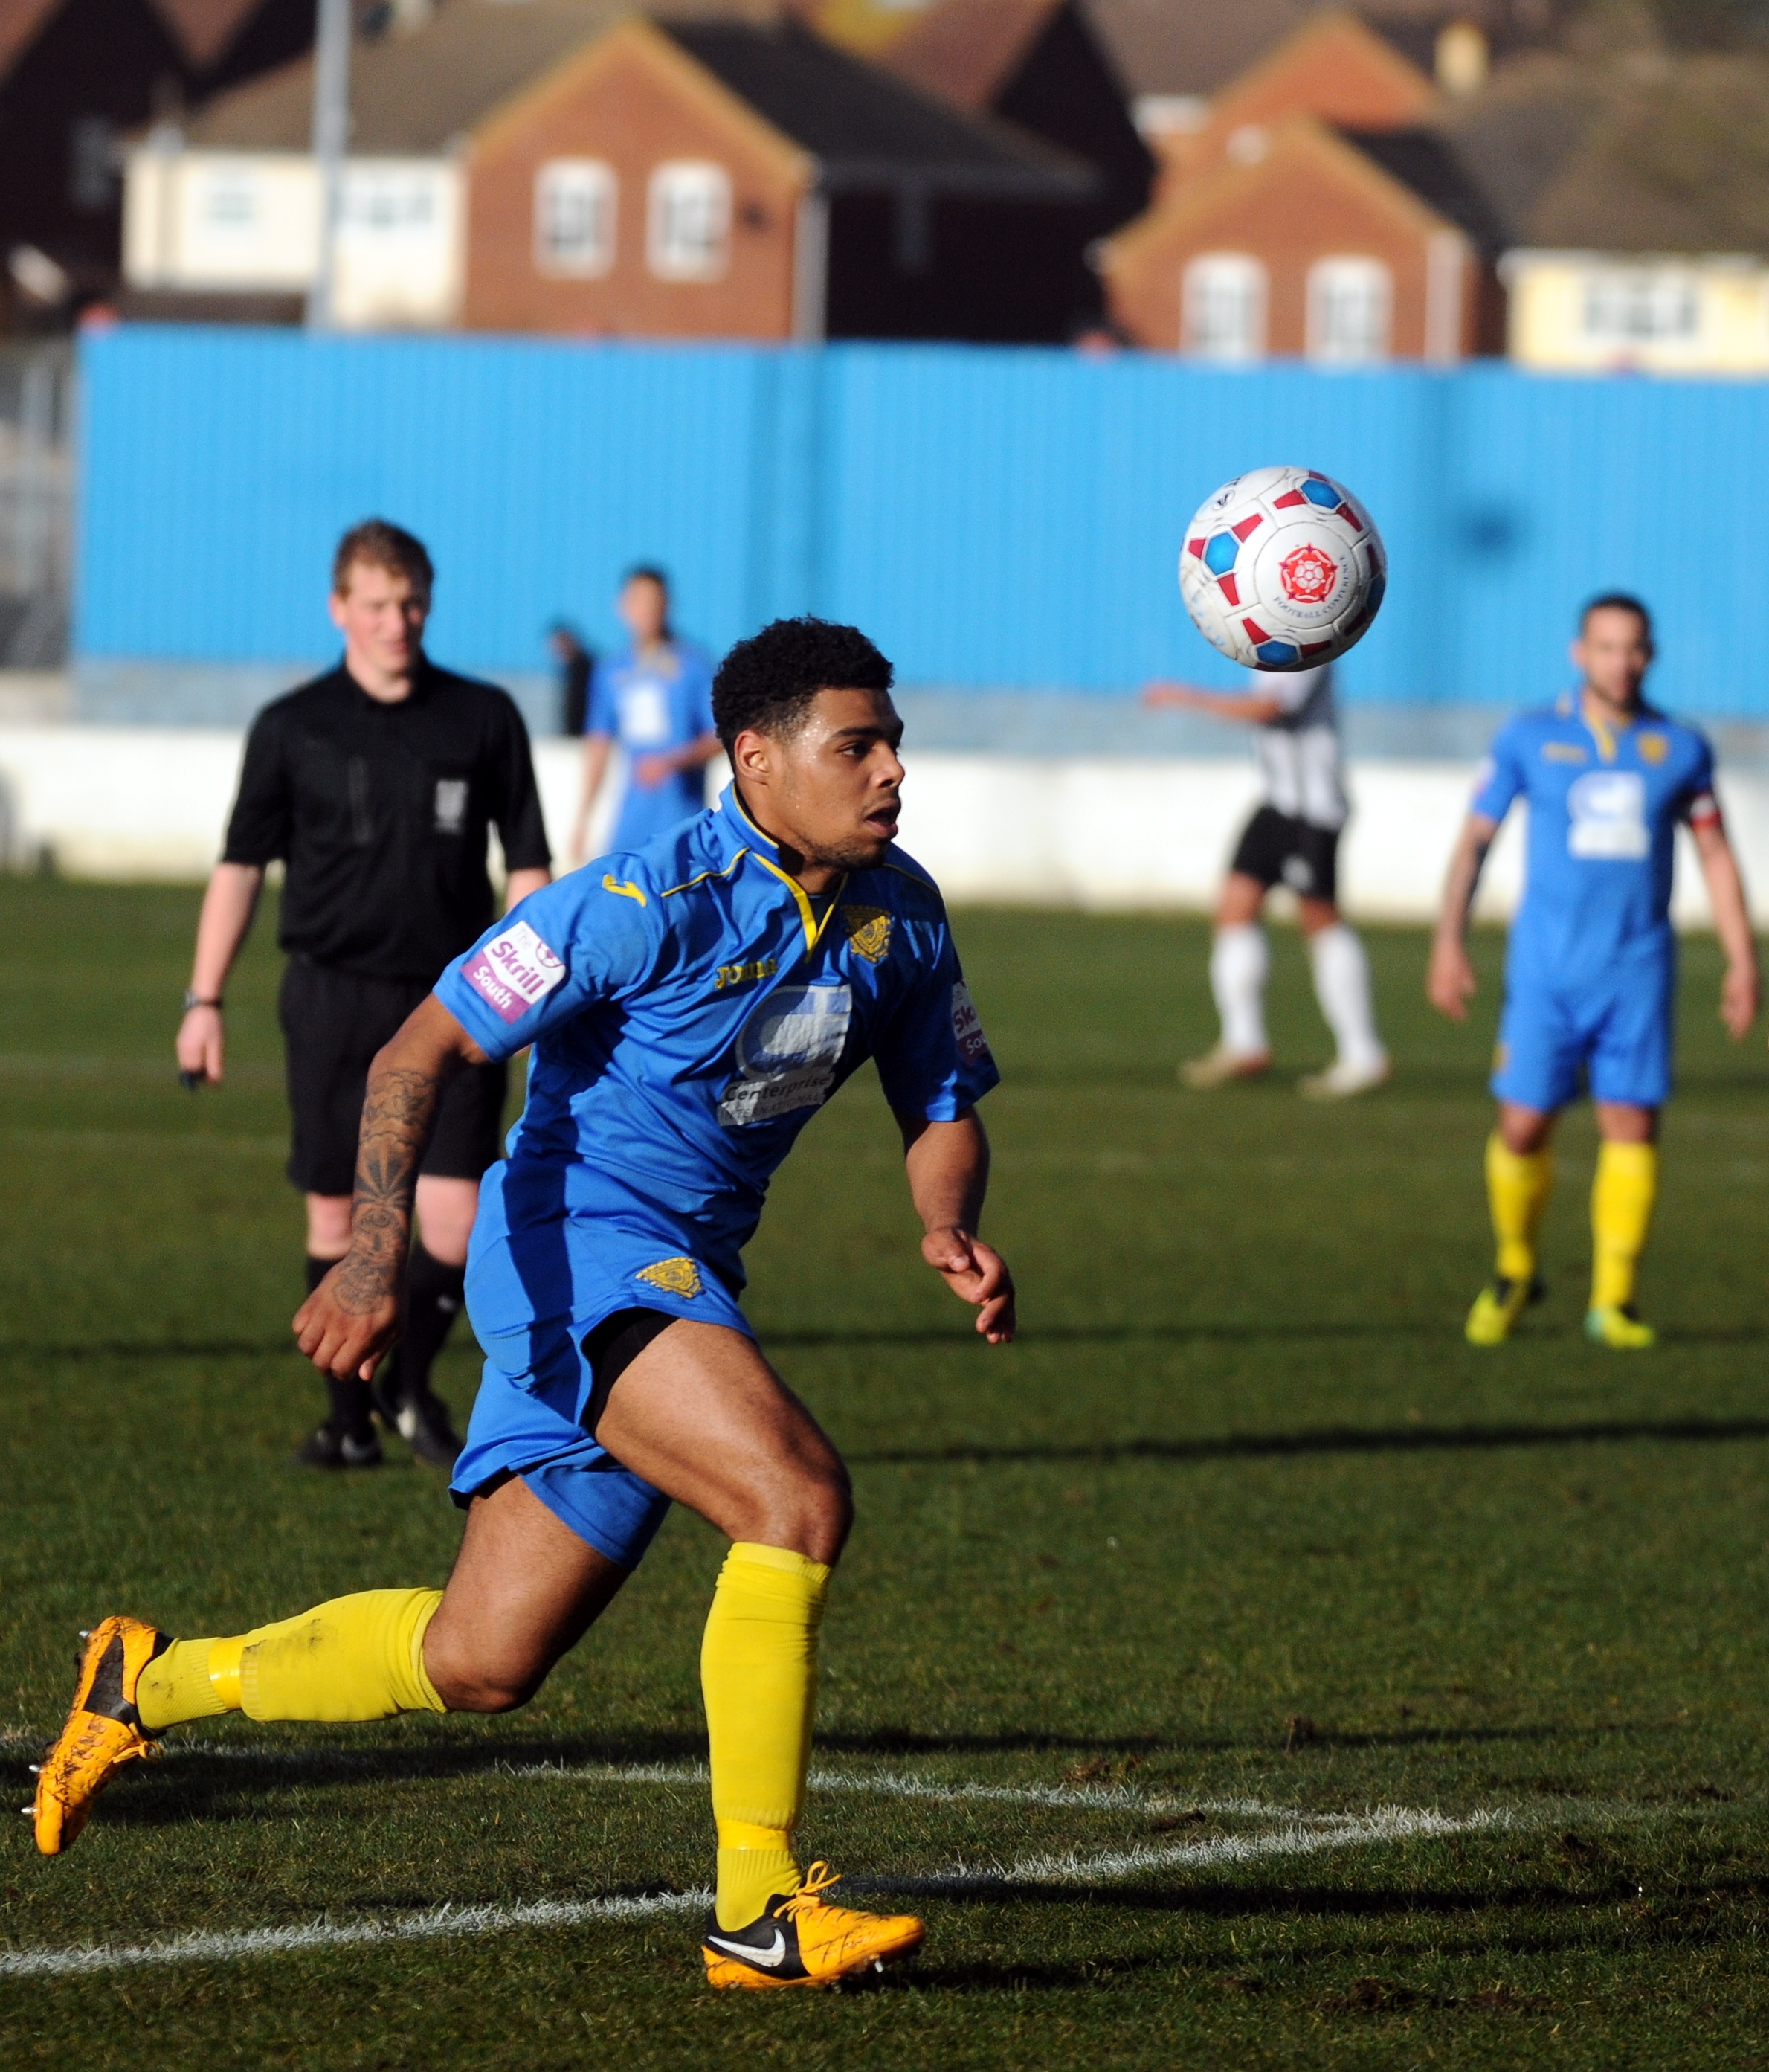 Jordace Holder-Spooner scored Basingstoke Town's opening goal - but his side were unable to hold on to a 2-0 lead.